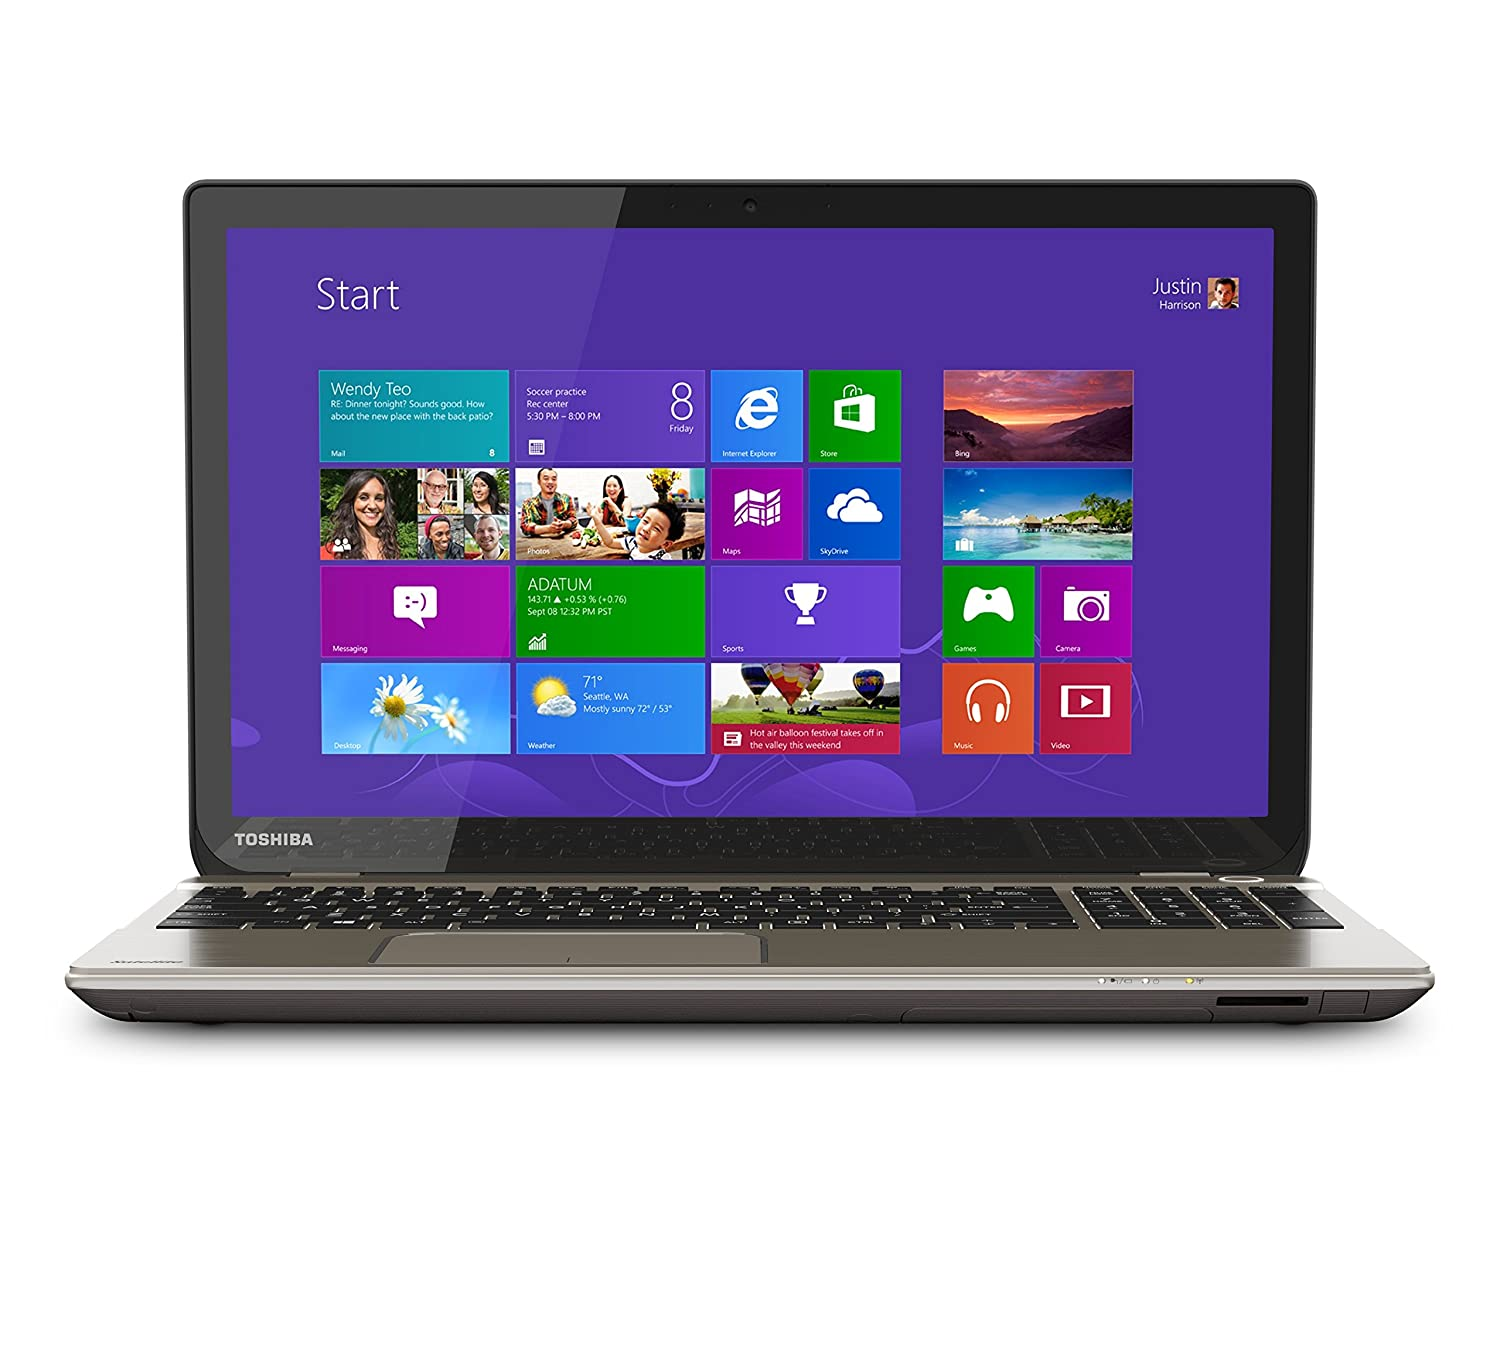 Amazon: Toshiba Satellite P55tb5262 156inch Touchscreen Laptop: Puters & Accessories